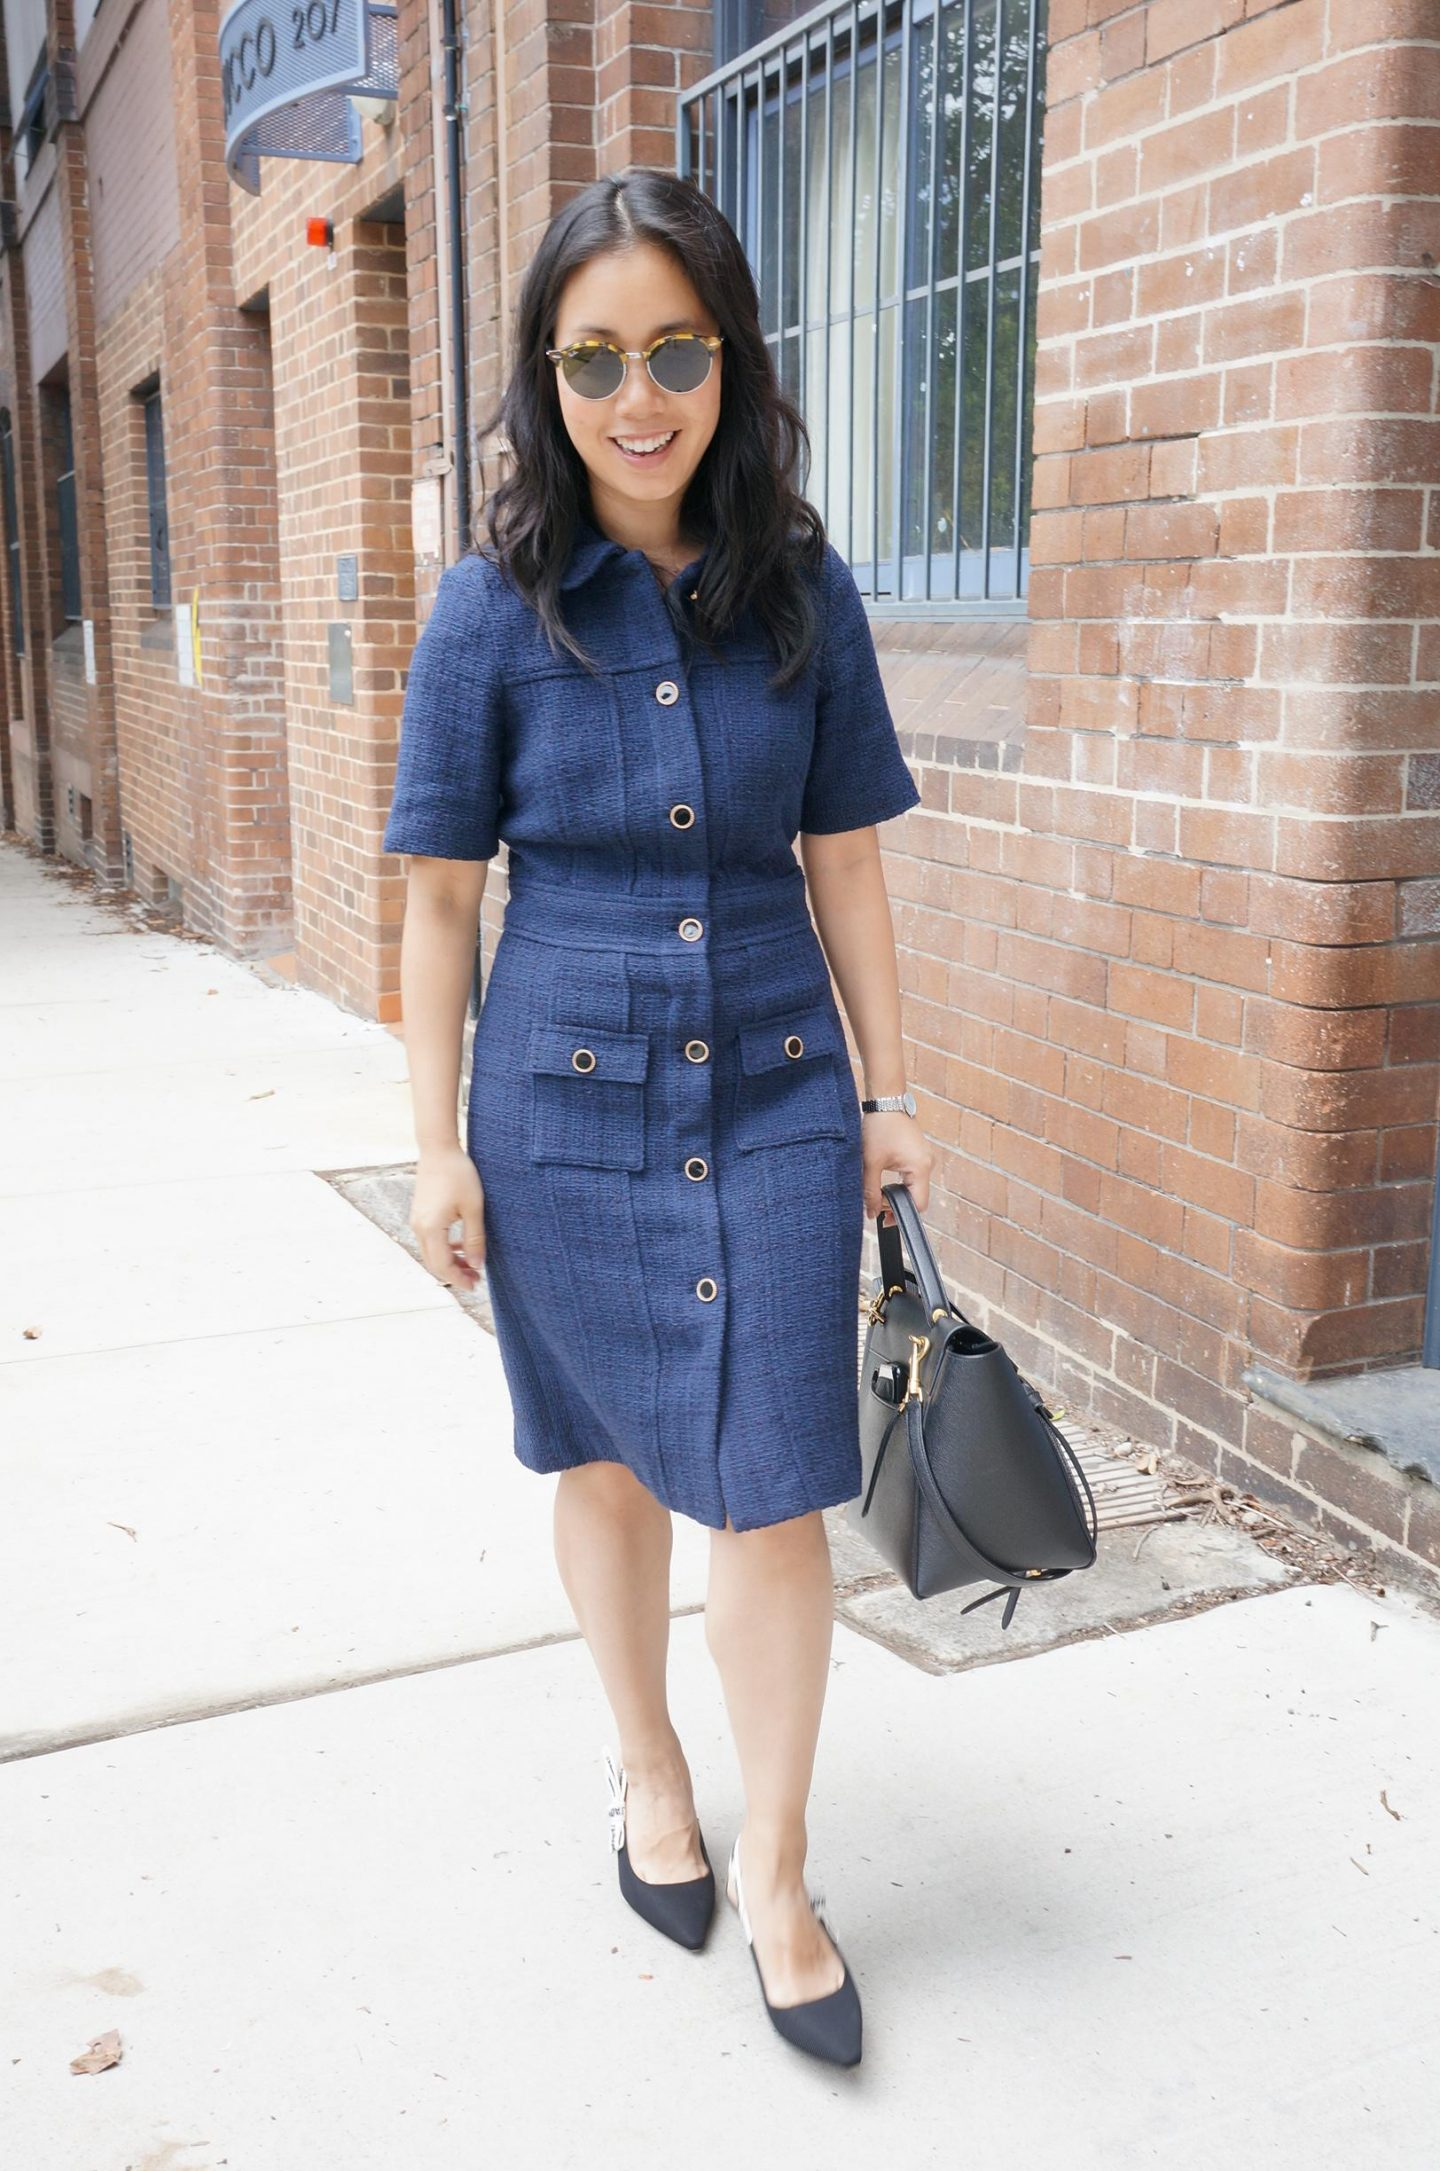 navy tweed dress that is a dupe for chanel tweed dress in blog post about marks spencer workwear